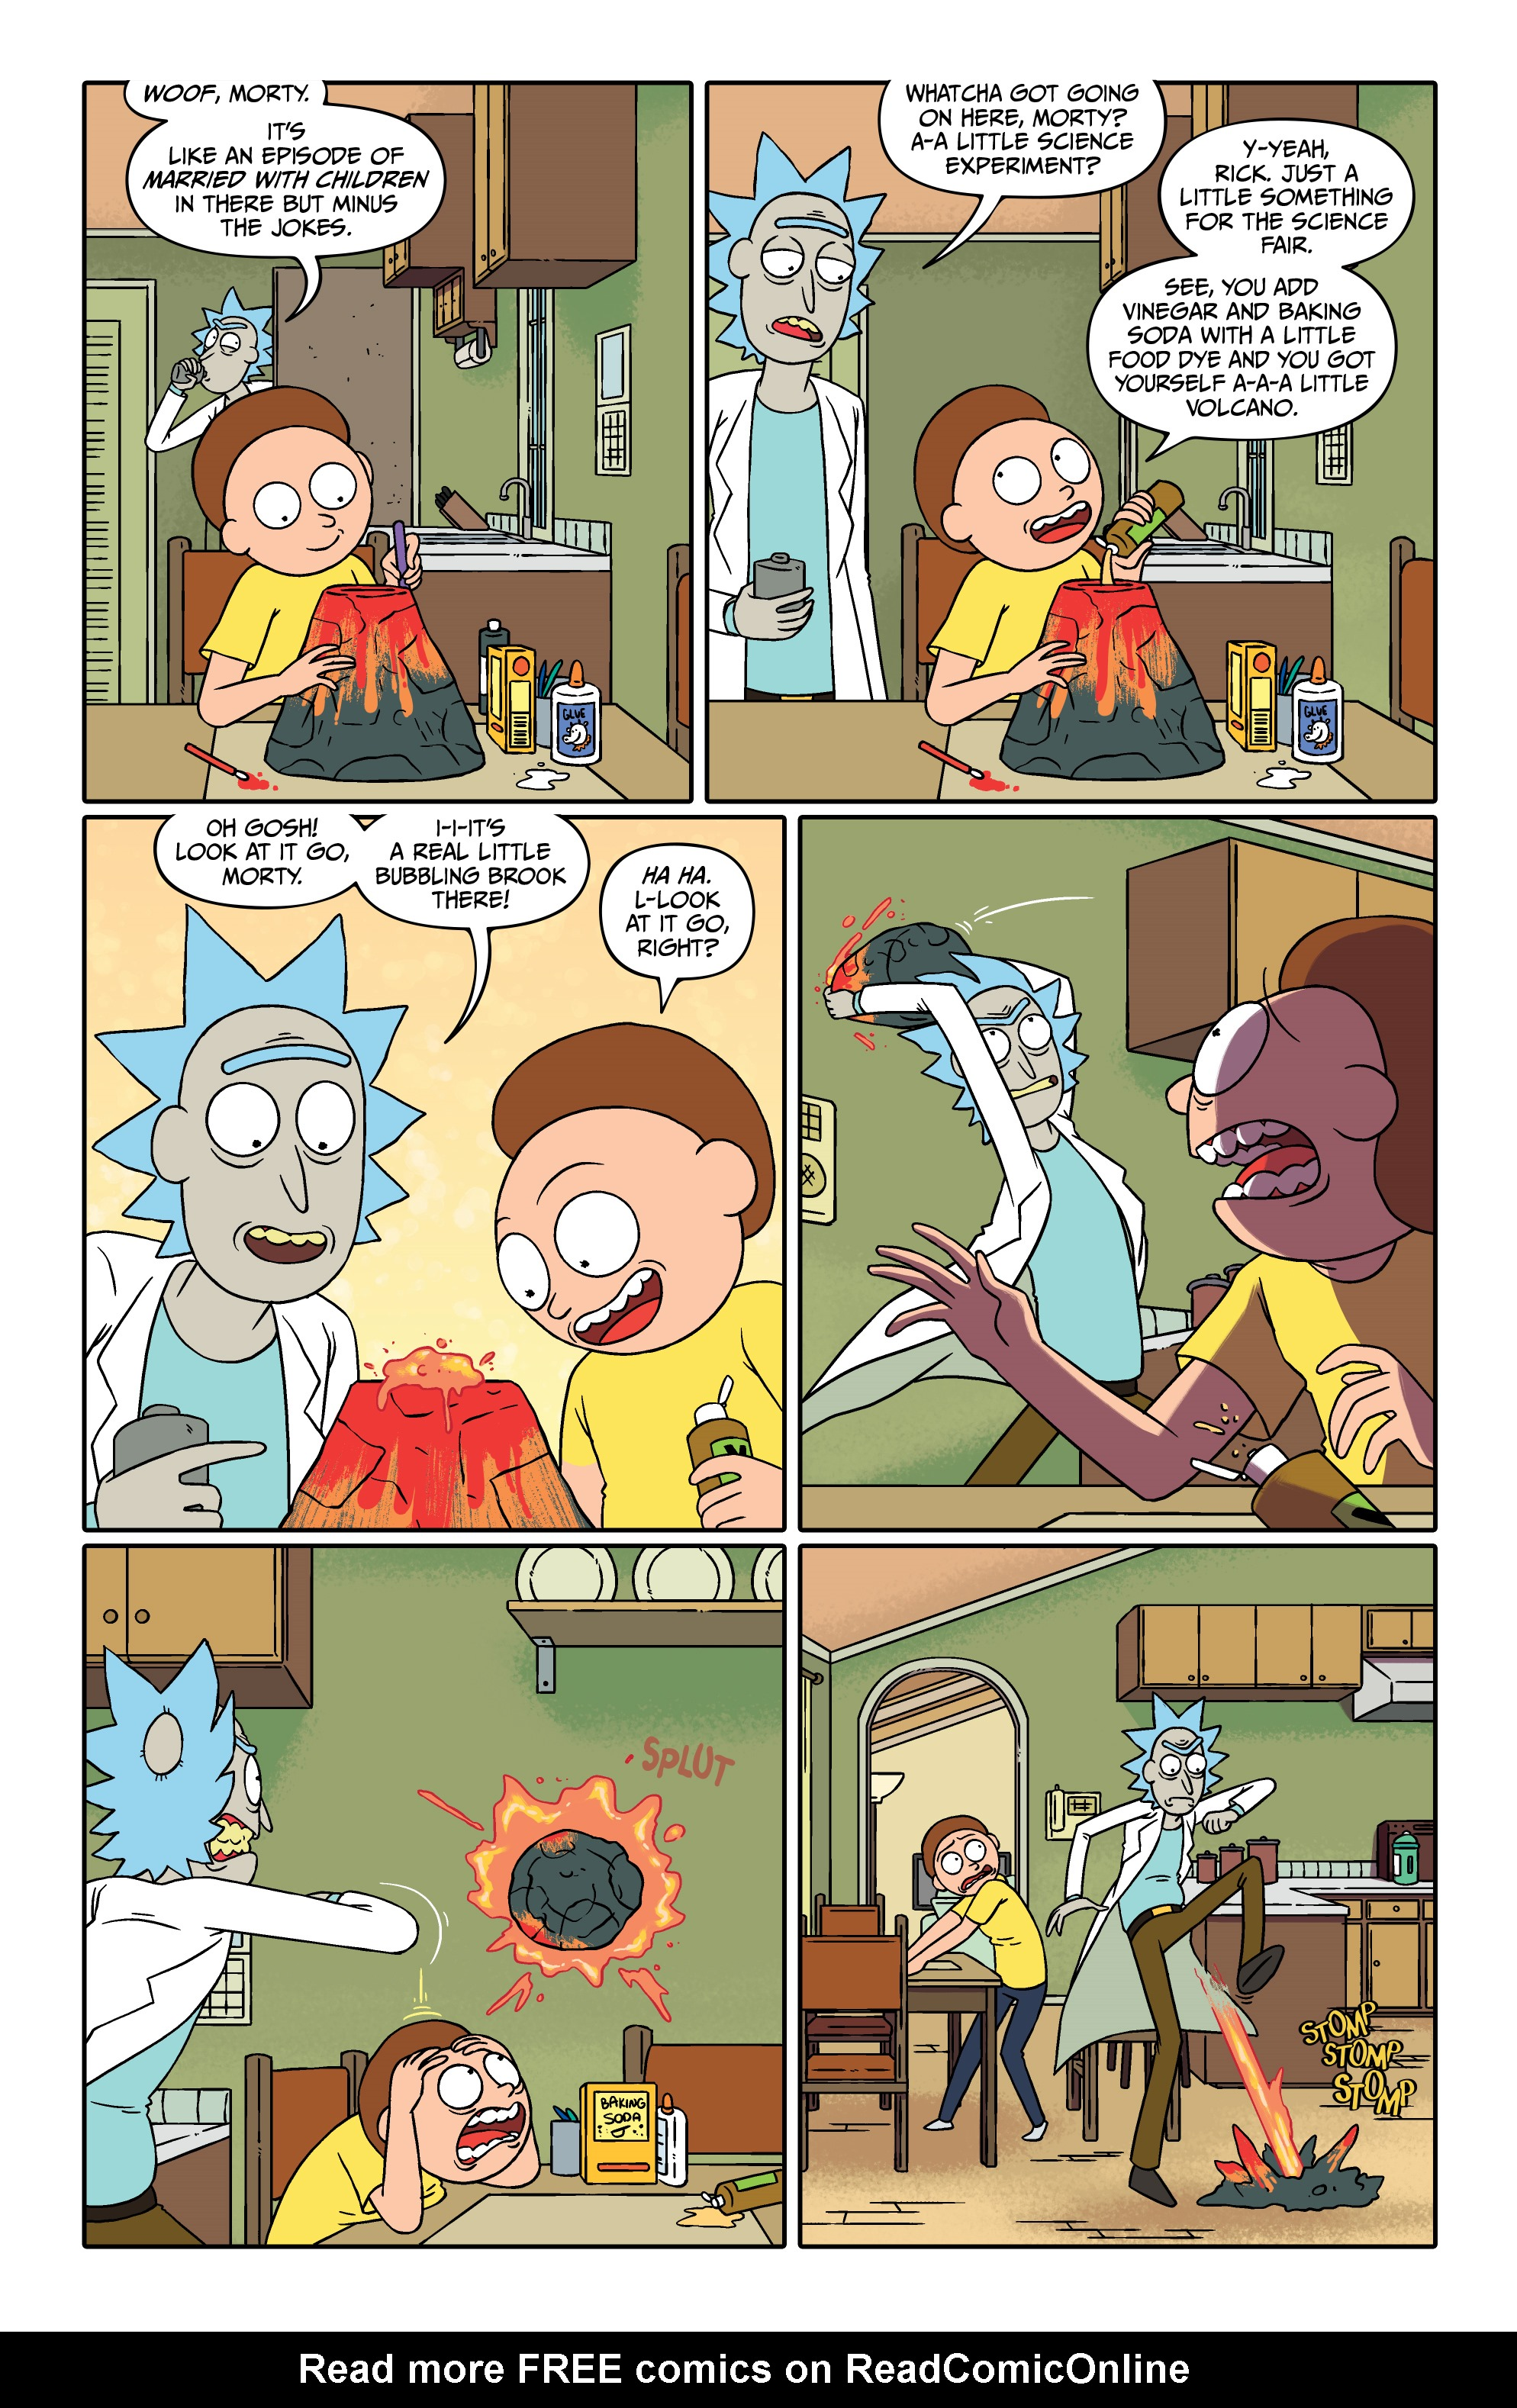 Read online Rick and Morty comic -  Issue #26 - 6